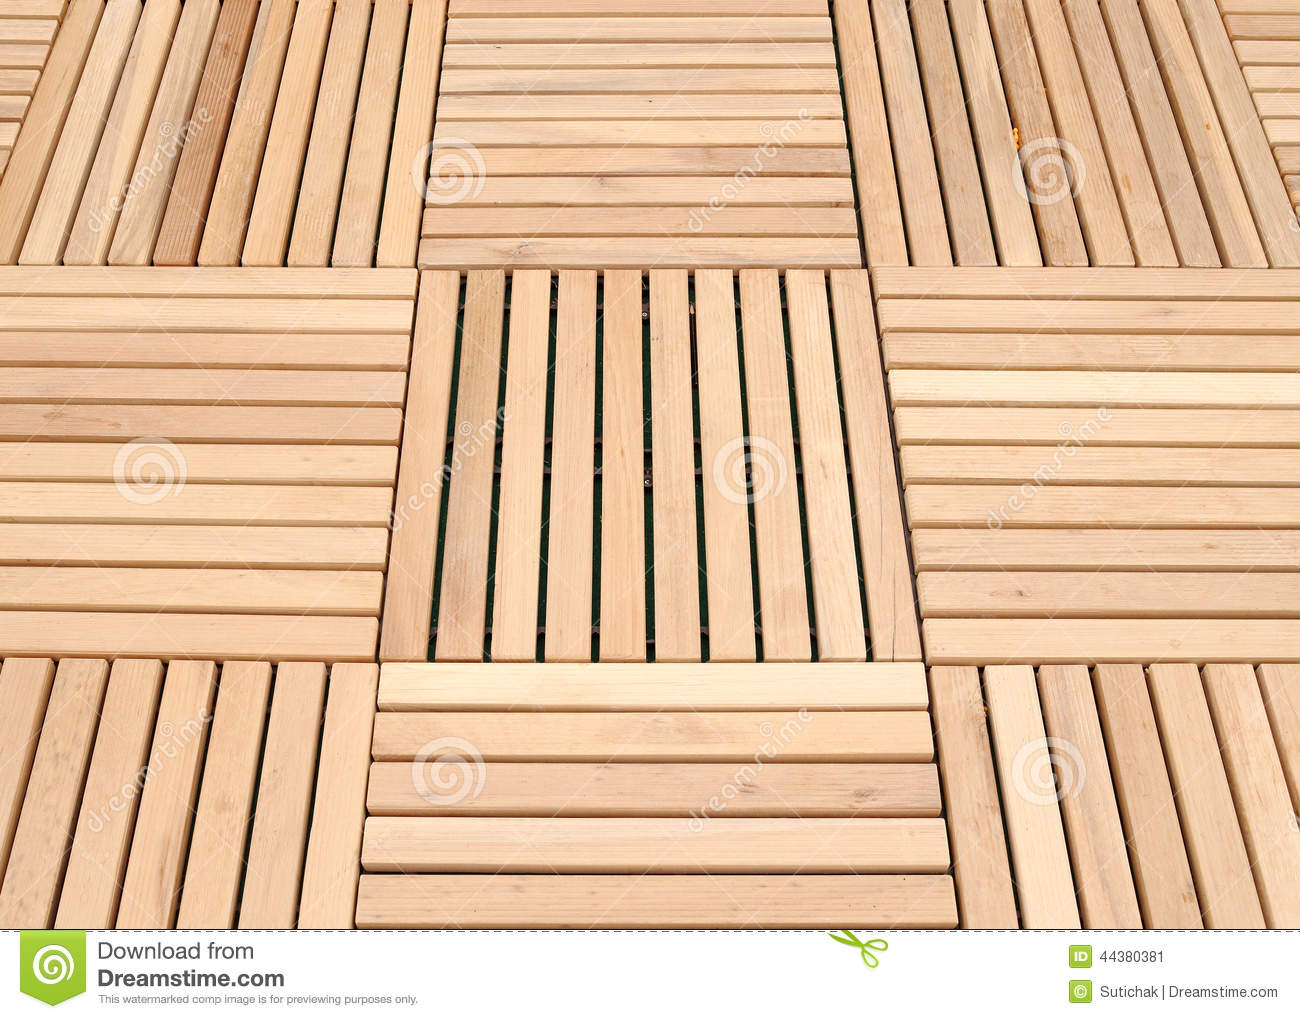 Superb img of Wood Deck Panel Floor Background Stock Photo Image: 44380381 with #B66715 color and 1300x1019 pixels